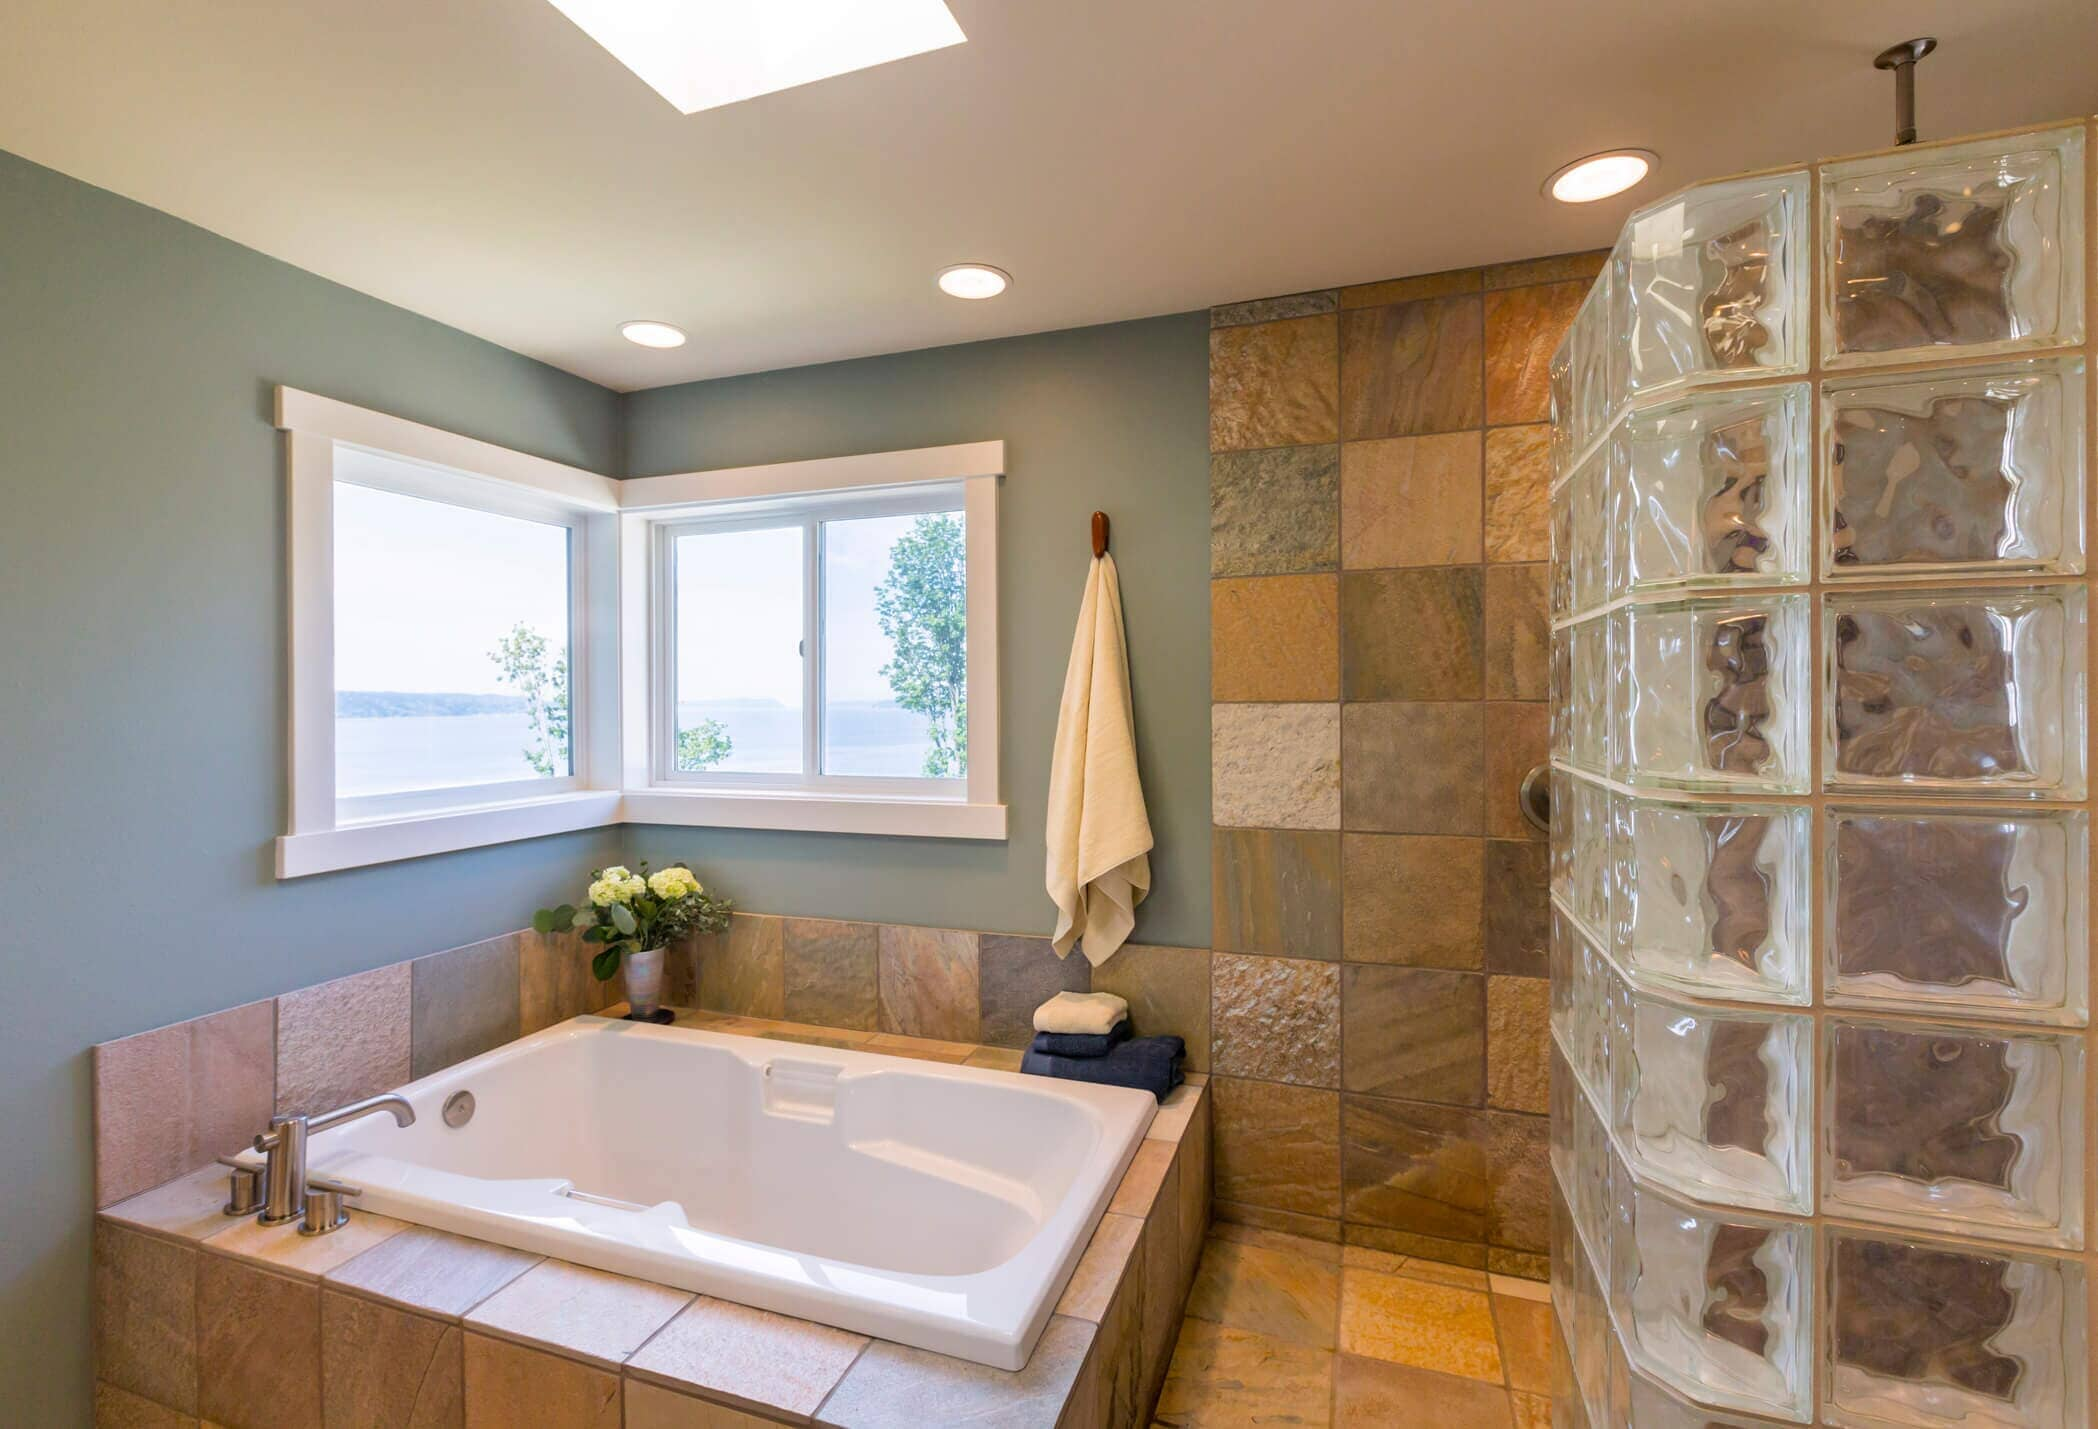 Bath Remodeling Work Spokane WA Bathcrest Of Custom Craftsman - Bathroom remodel spokane wa